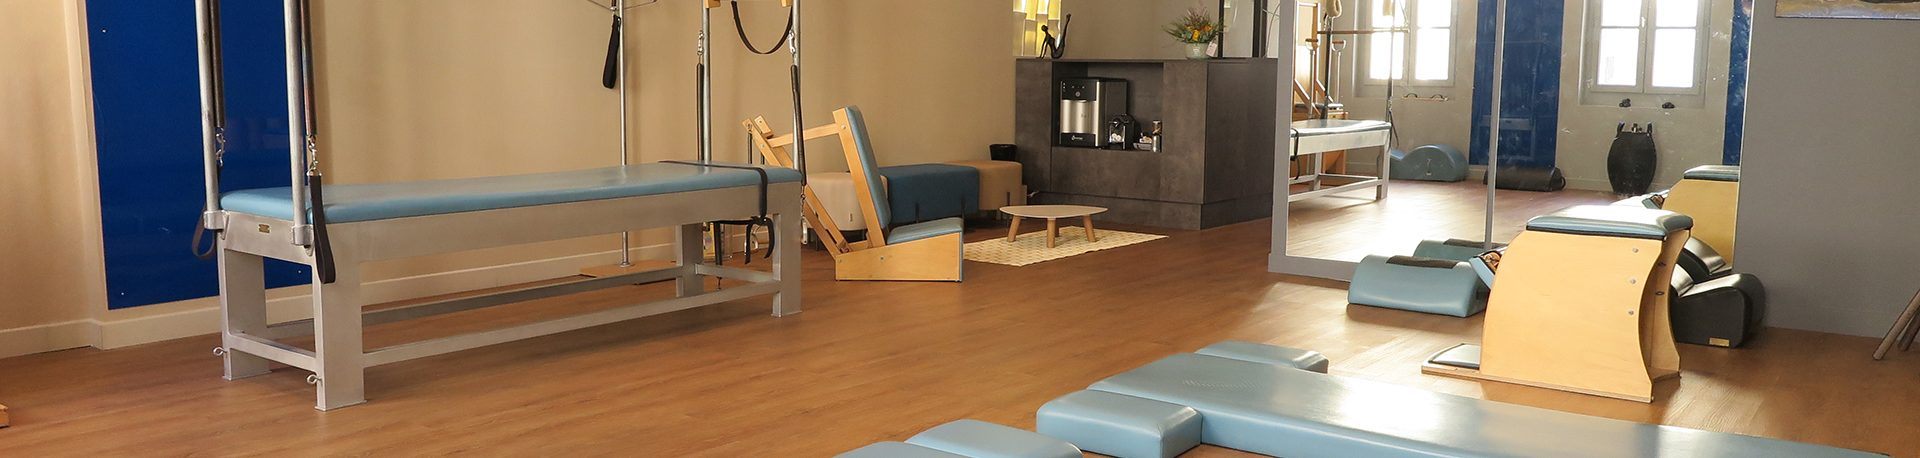 Studio pilates de Marseille